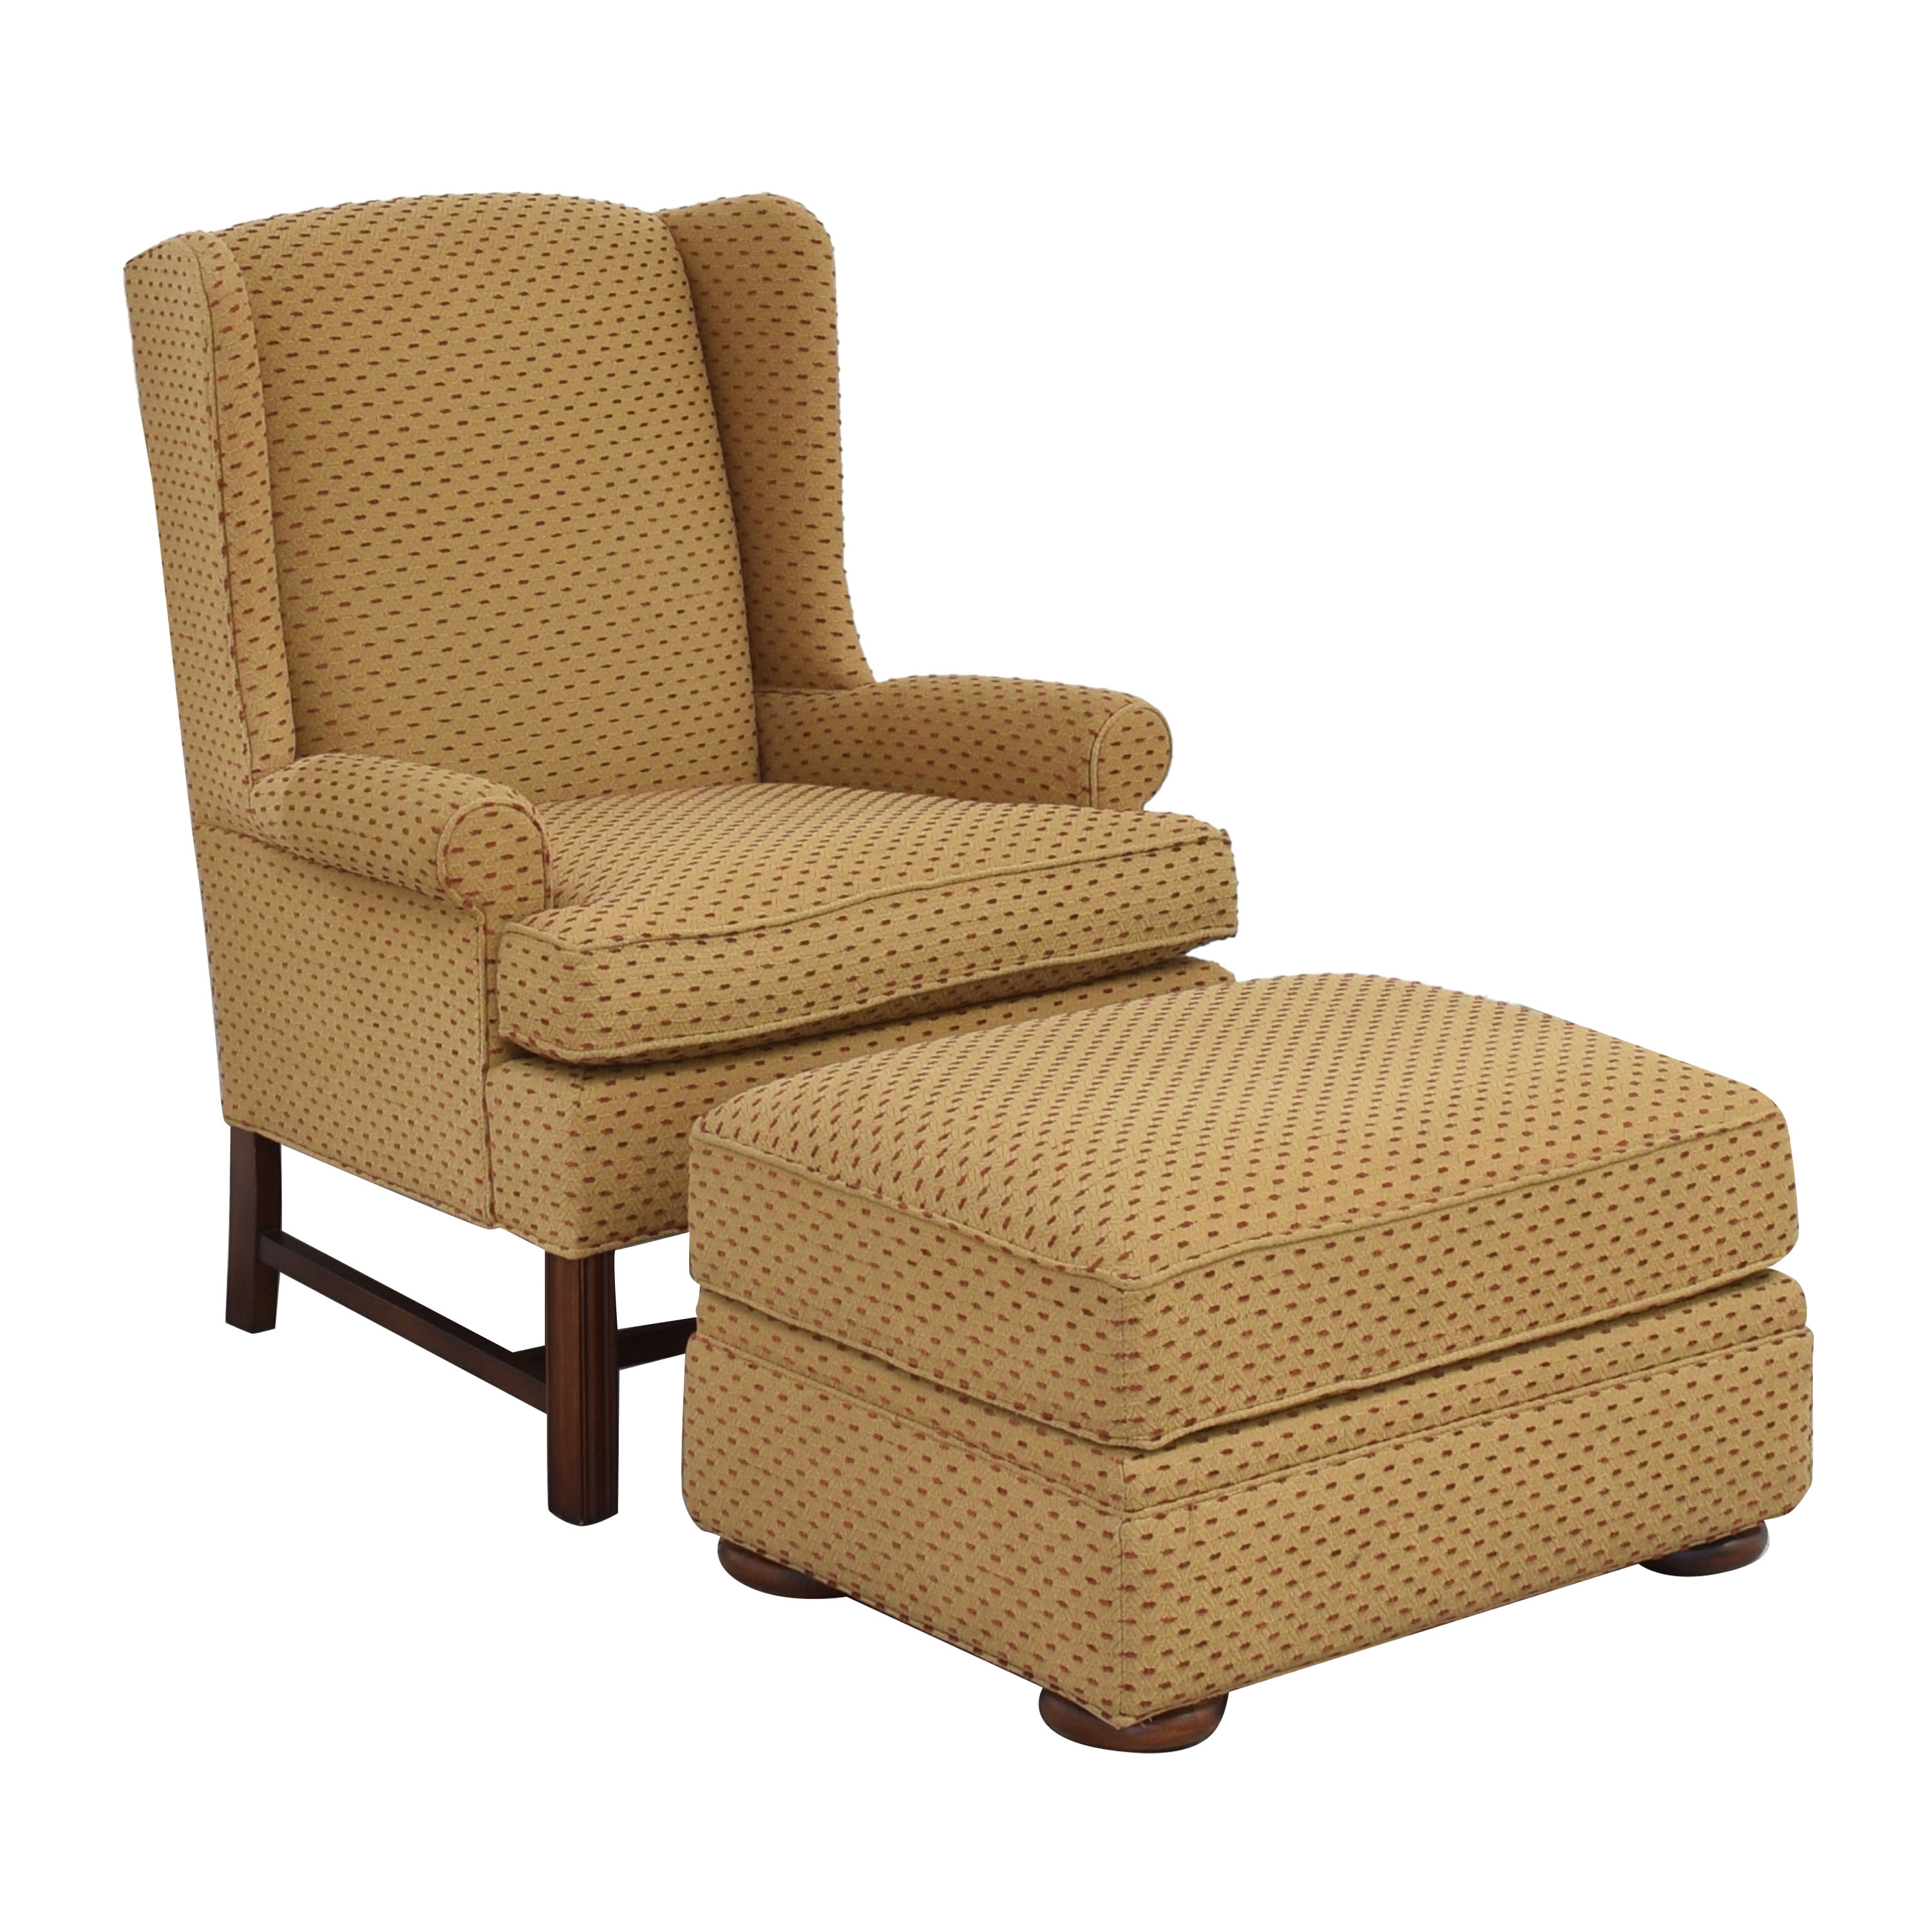 Thomasville Thomasville Accent Chair with Ottoman used